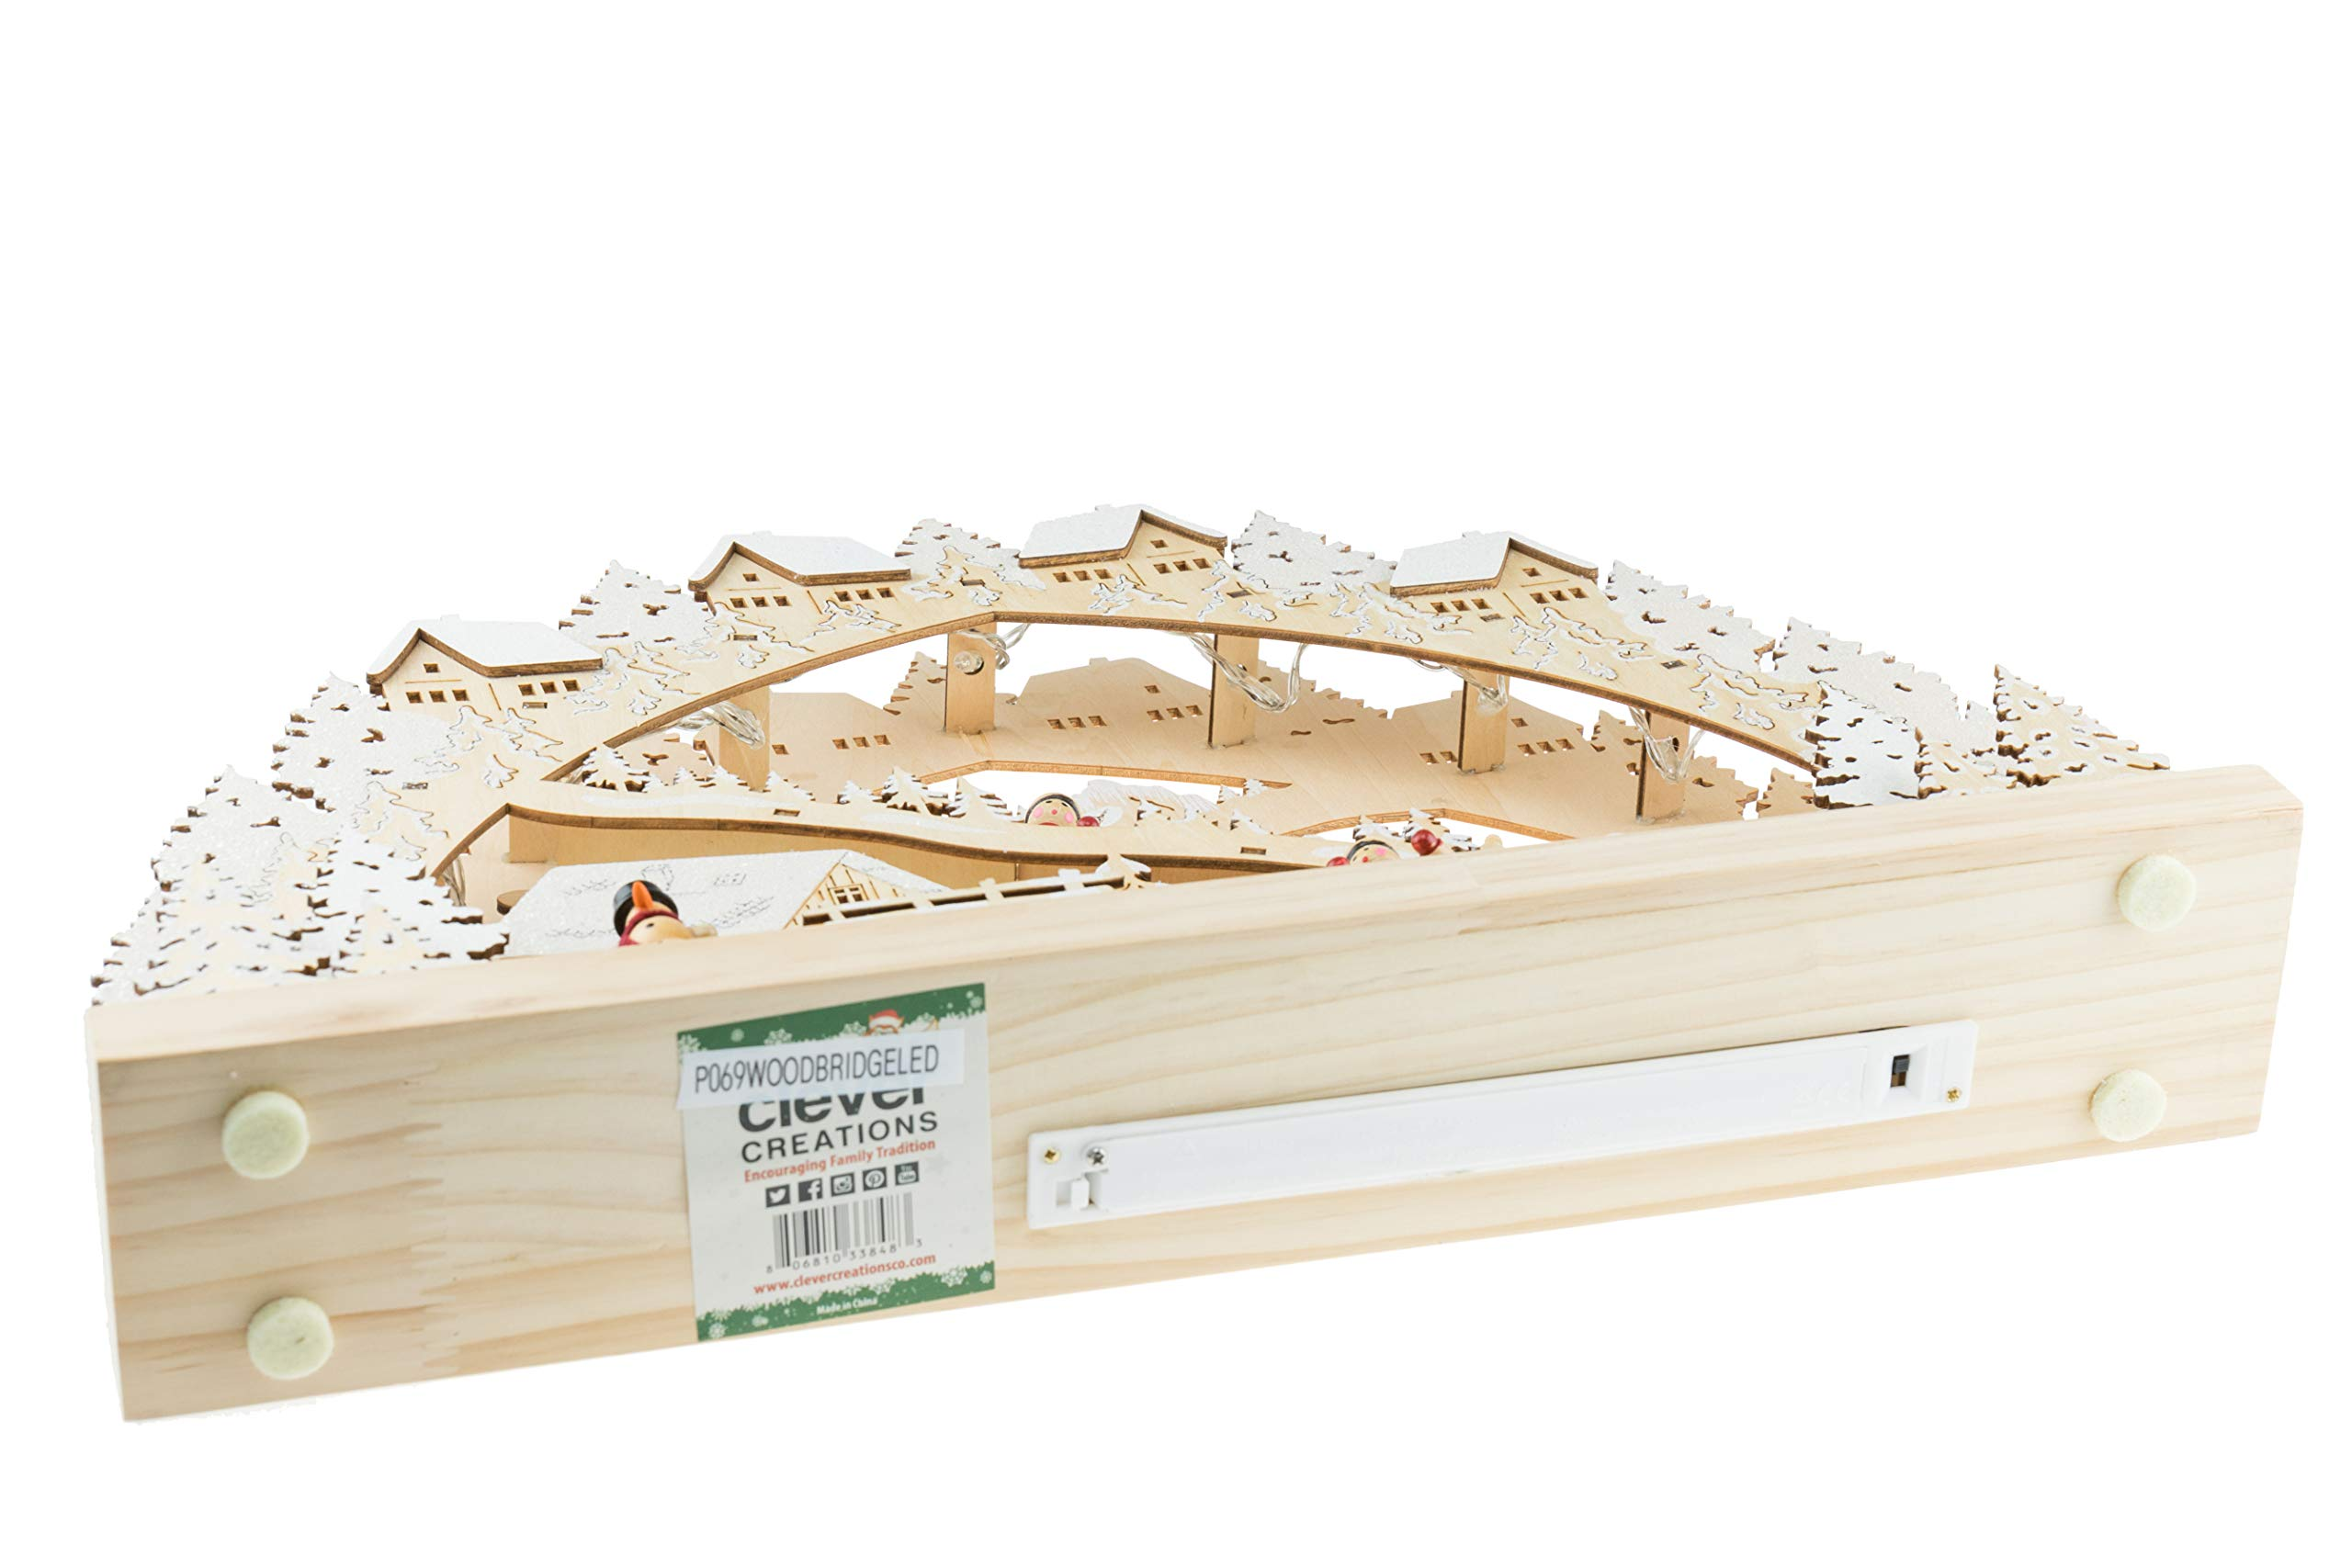 Clever Creations Traditional Wooden Table Top Christmas Decorations | Unique Skiing Hill with Battery Operated Christmas Lights | Festive Christmas Decor | Village, Skier Kids, Snowman, and Houses by Clever Creations (Image #2)